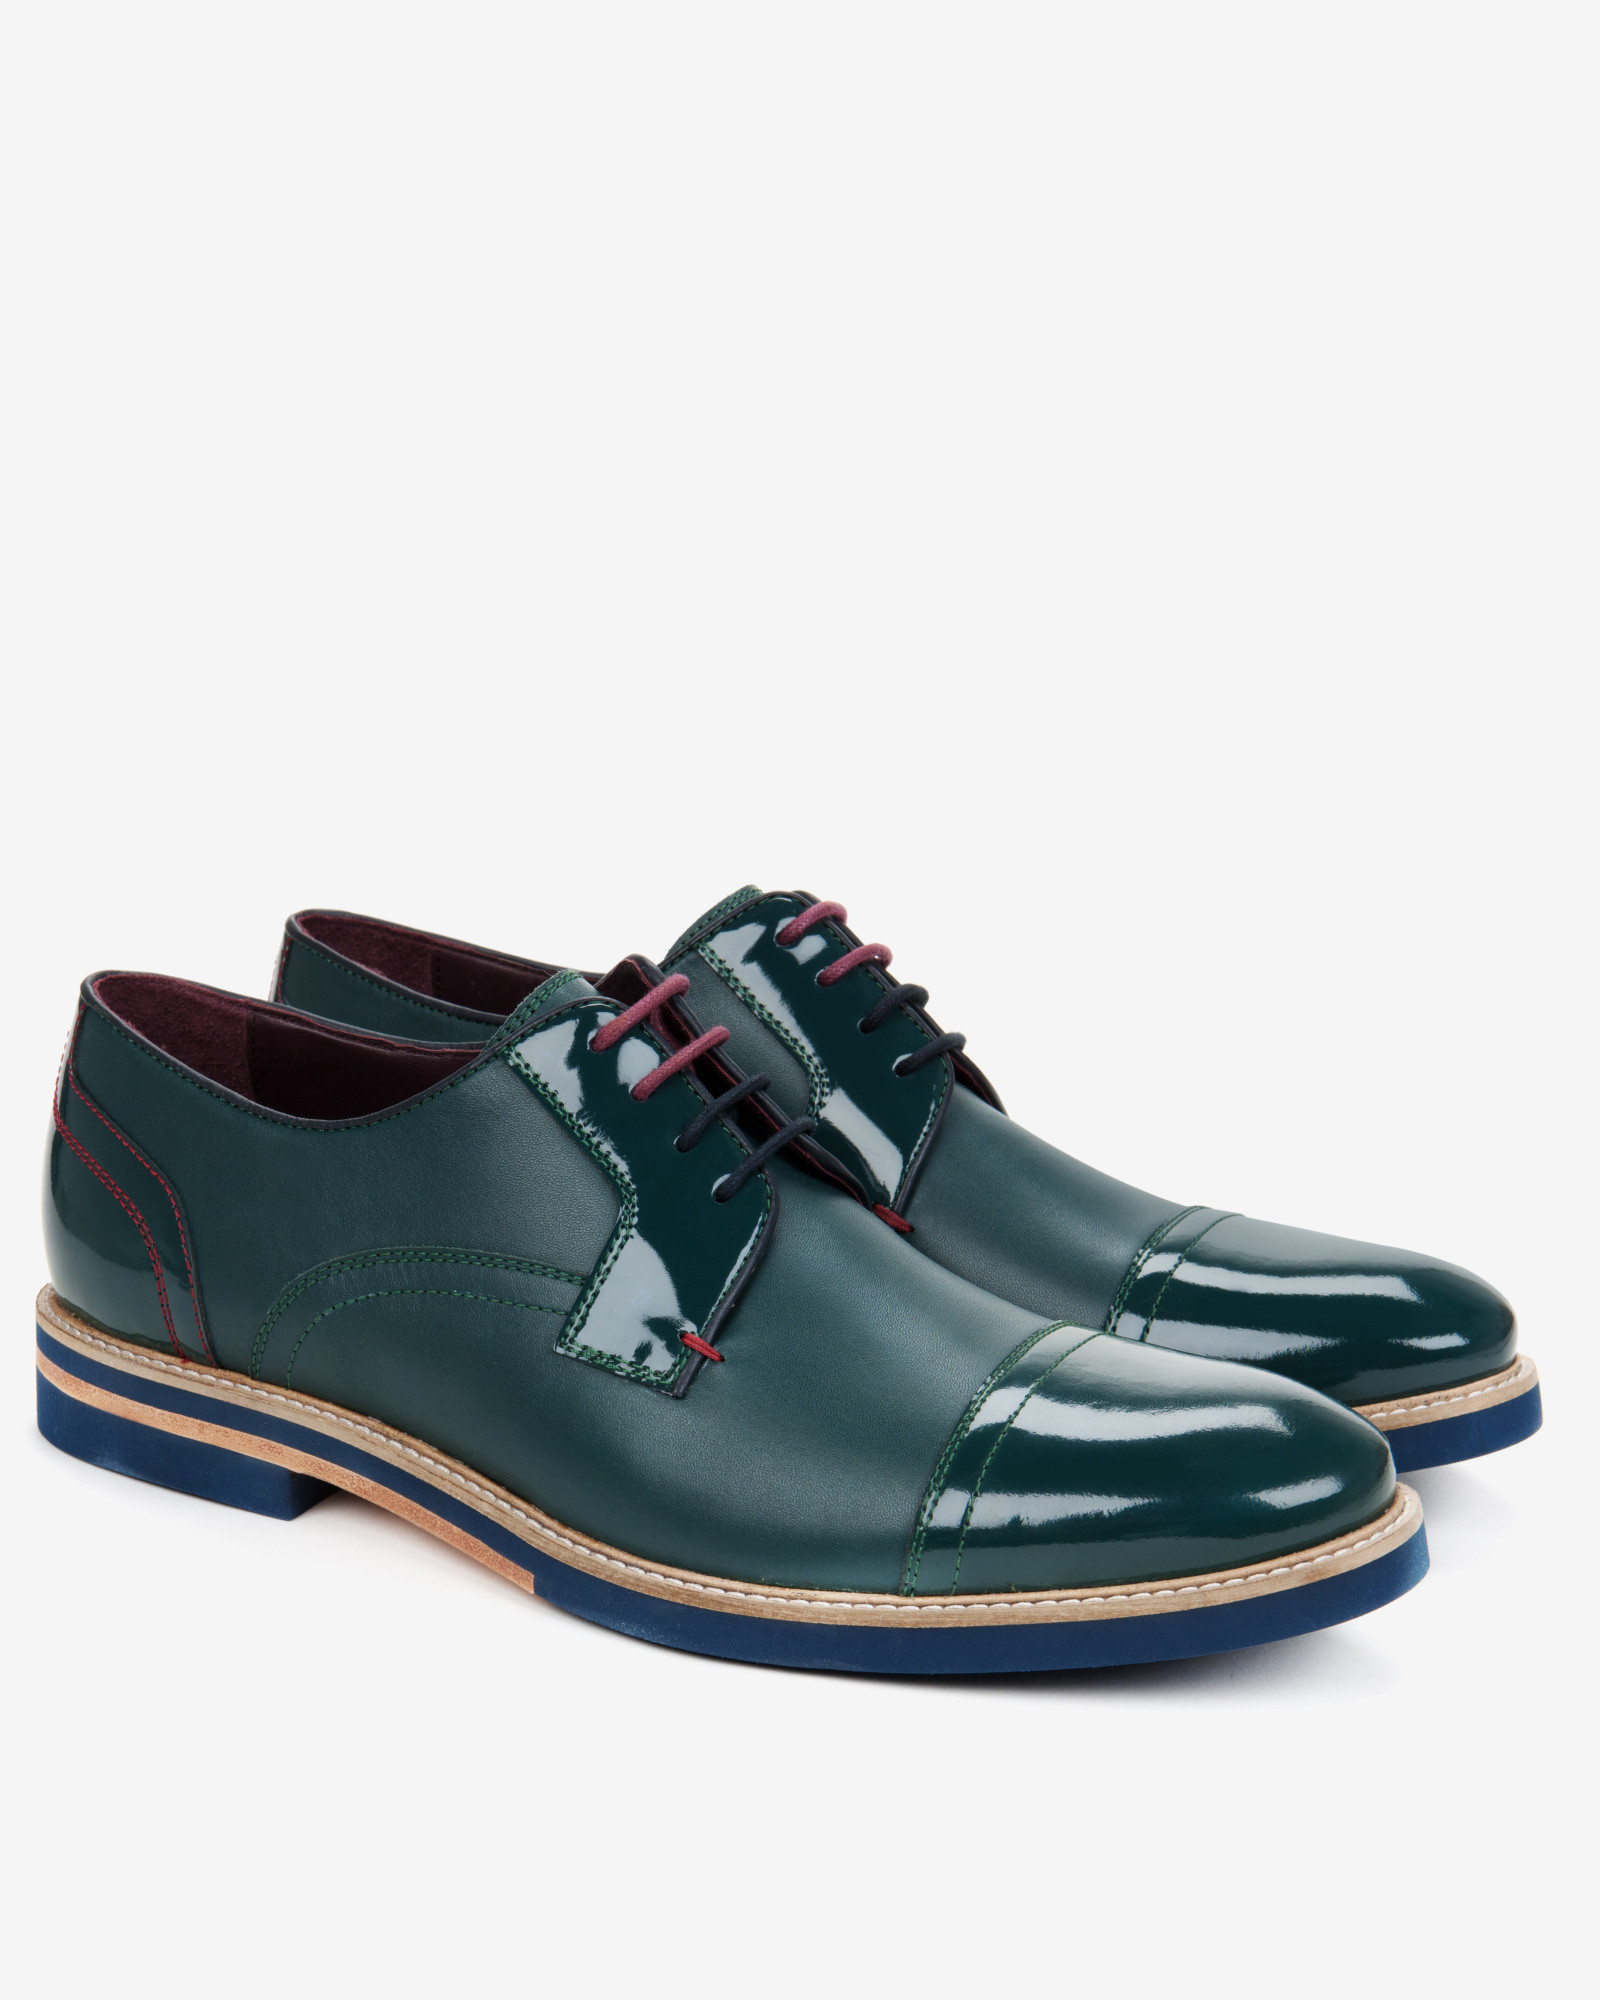 Ted Baker Men S Green Textured Derby Shoes Green